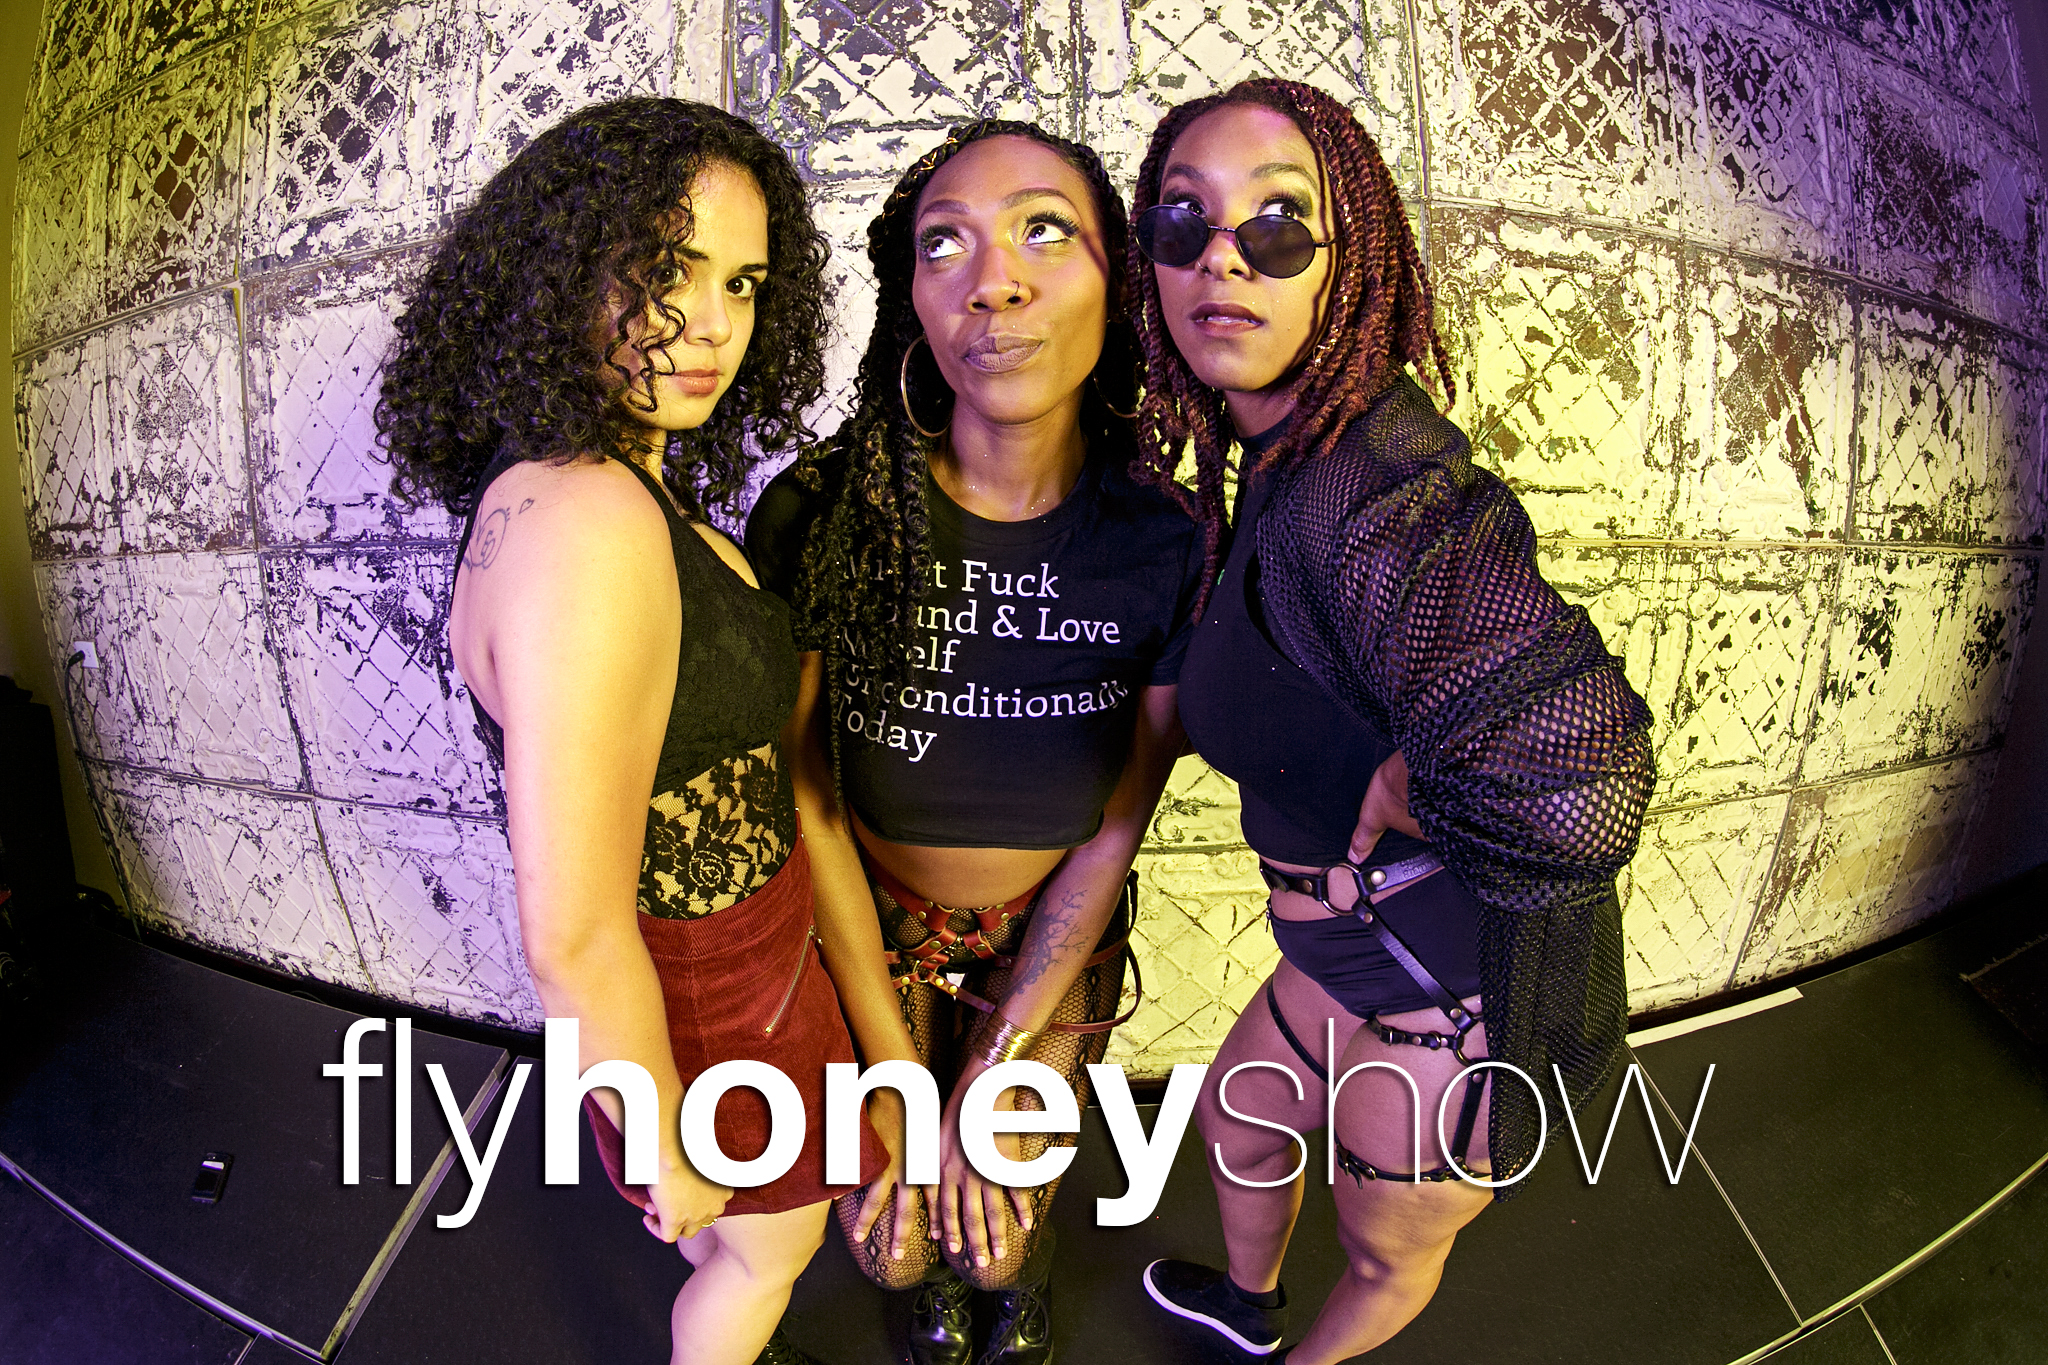 glitterguts portrait booth photos from the fly honey show, august 17 2019